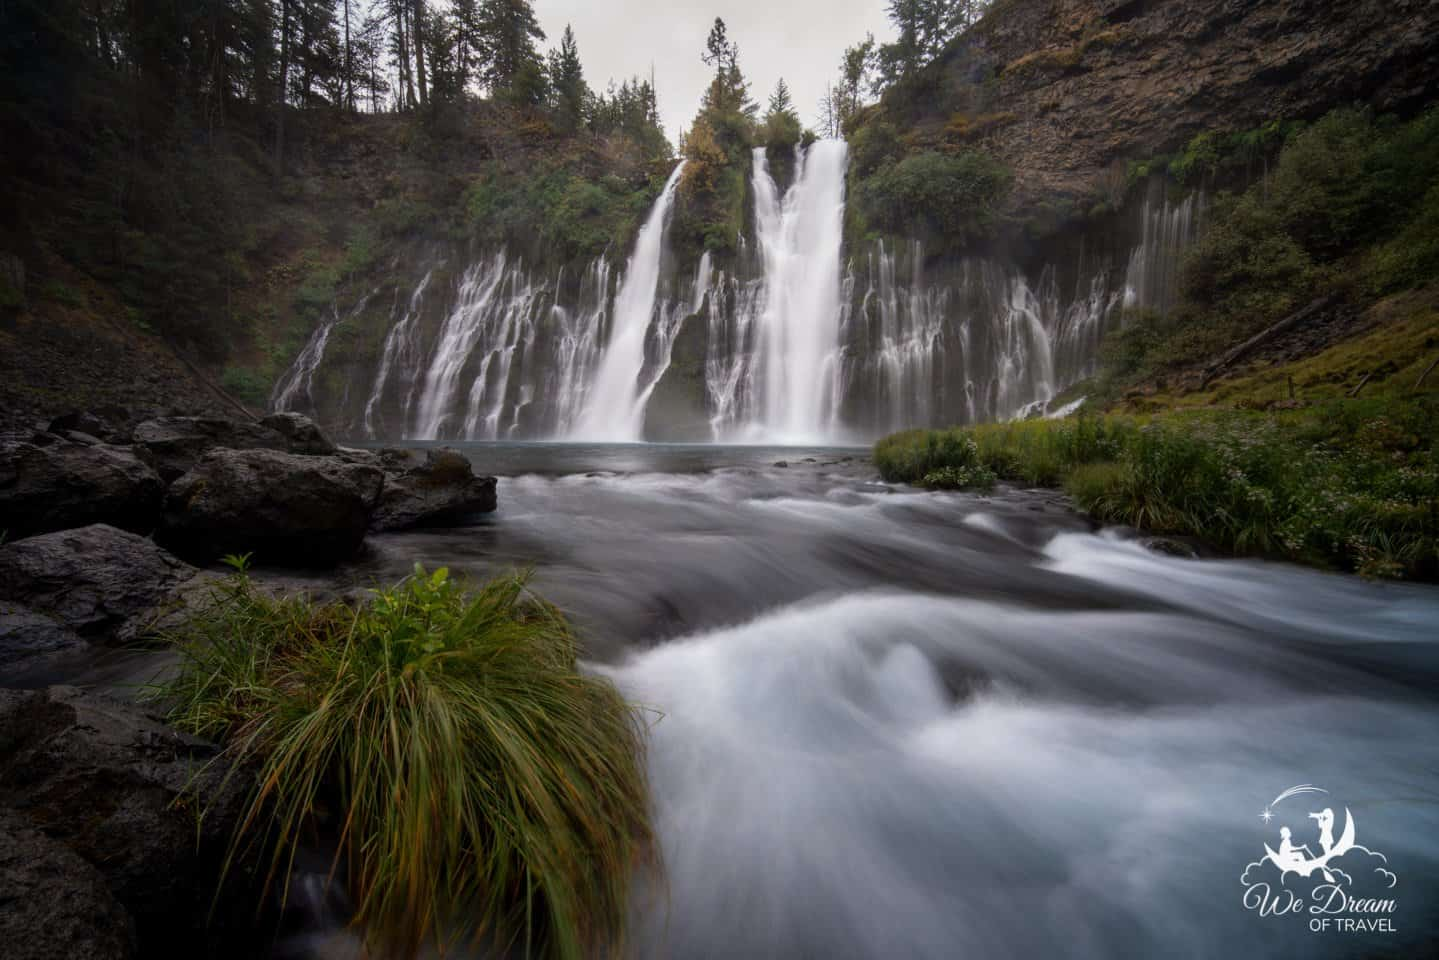 Moody, overcast day at Macarthur-Burney Falls Memorial State Park.